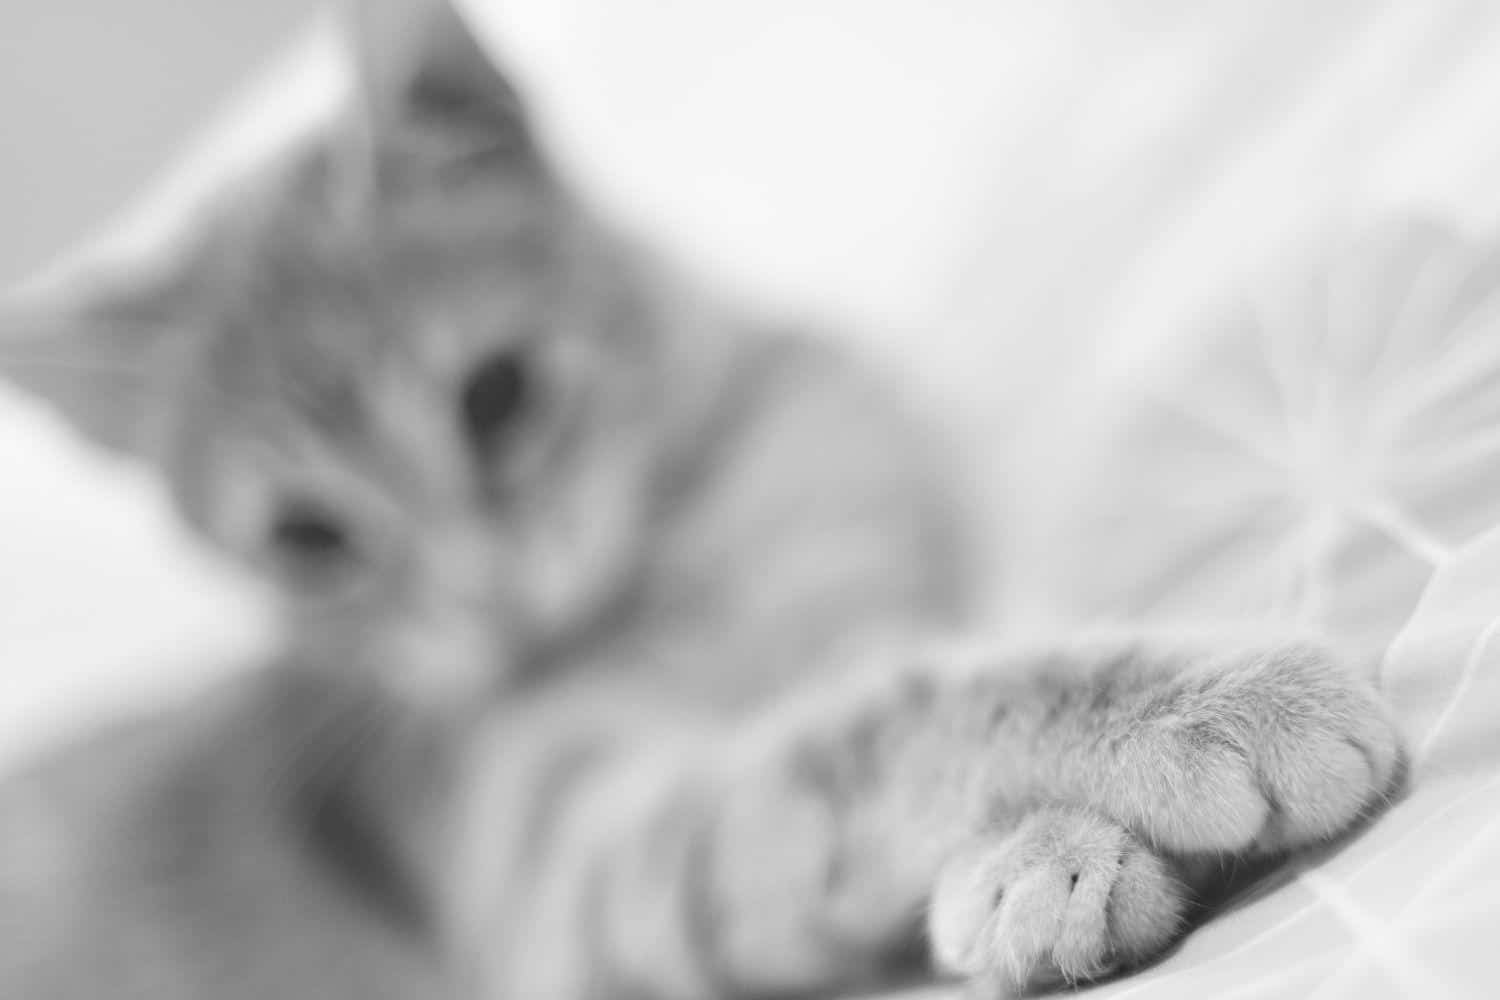 Tabby cat with front paws crossed